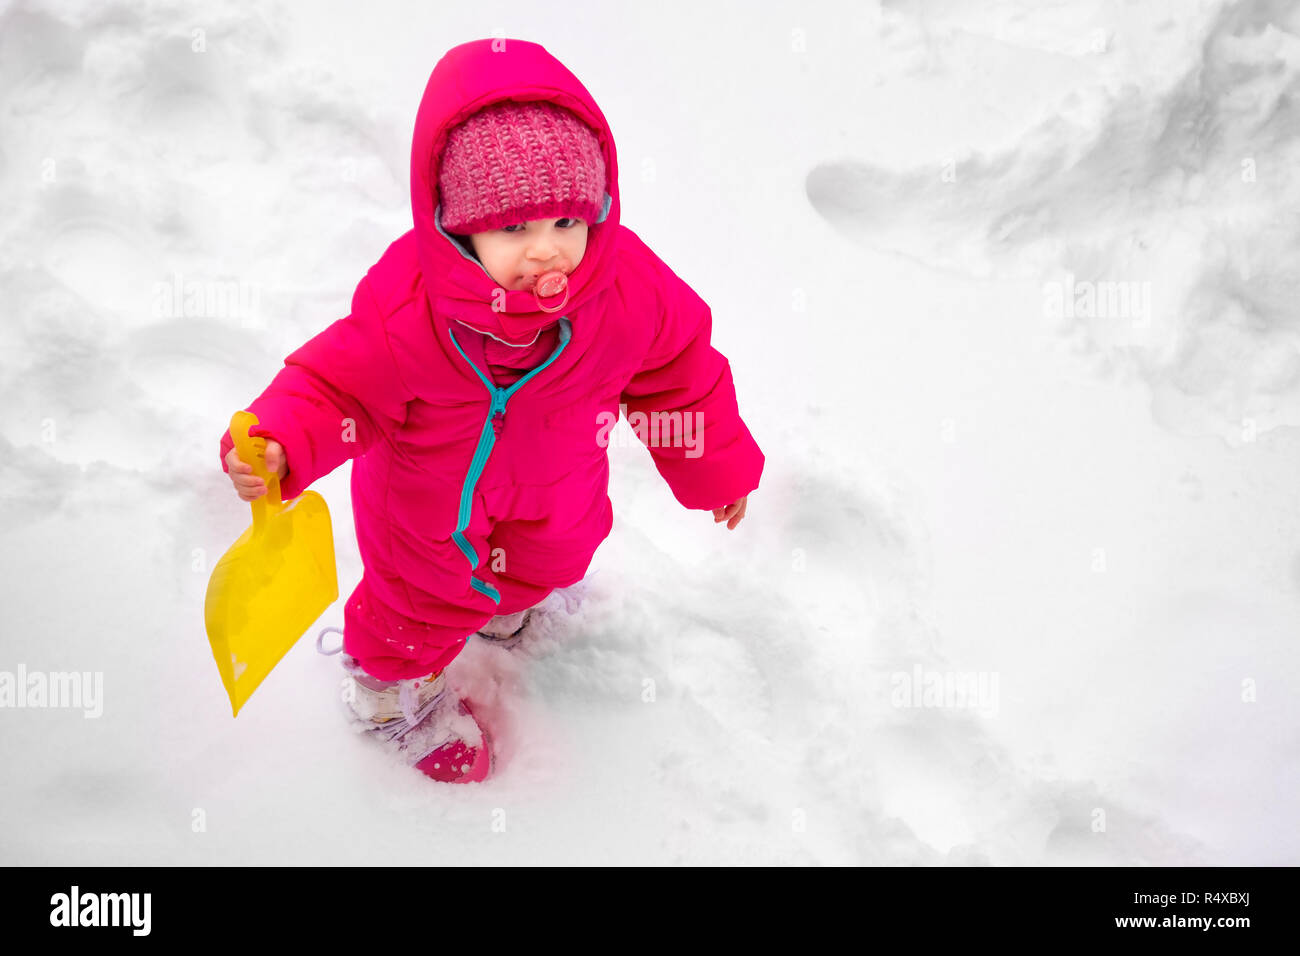 little baby girl view play snow wearpink child ski suit winter - Stock Image